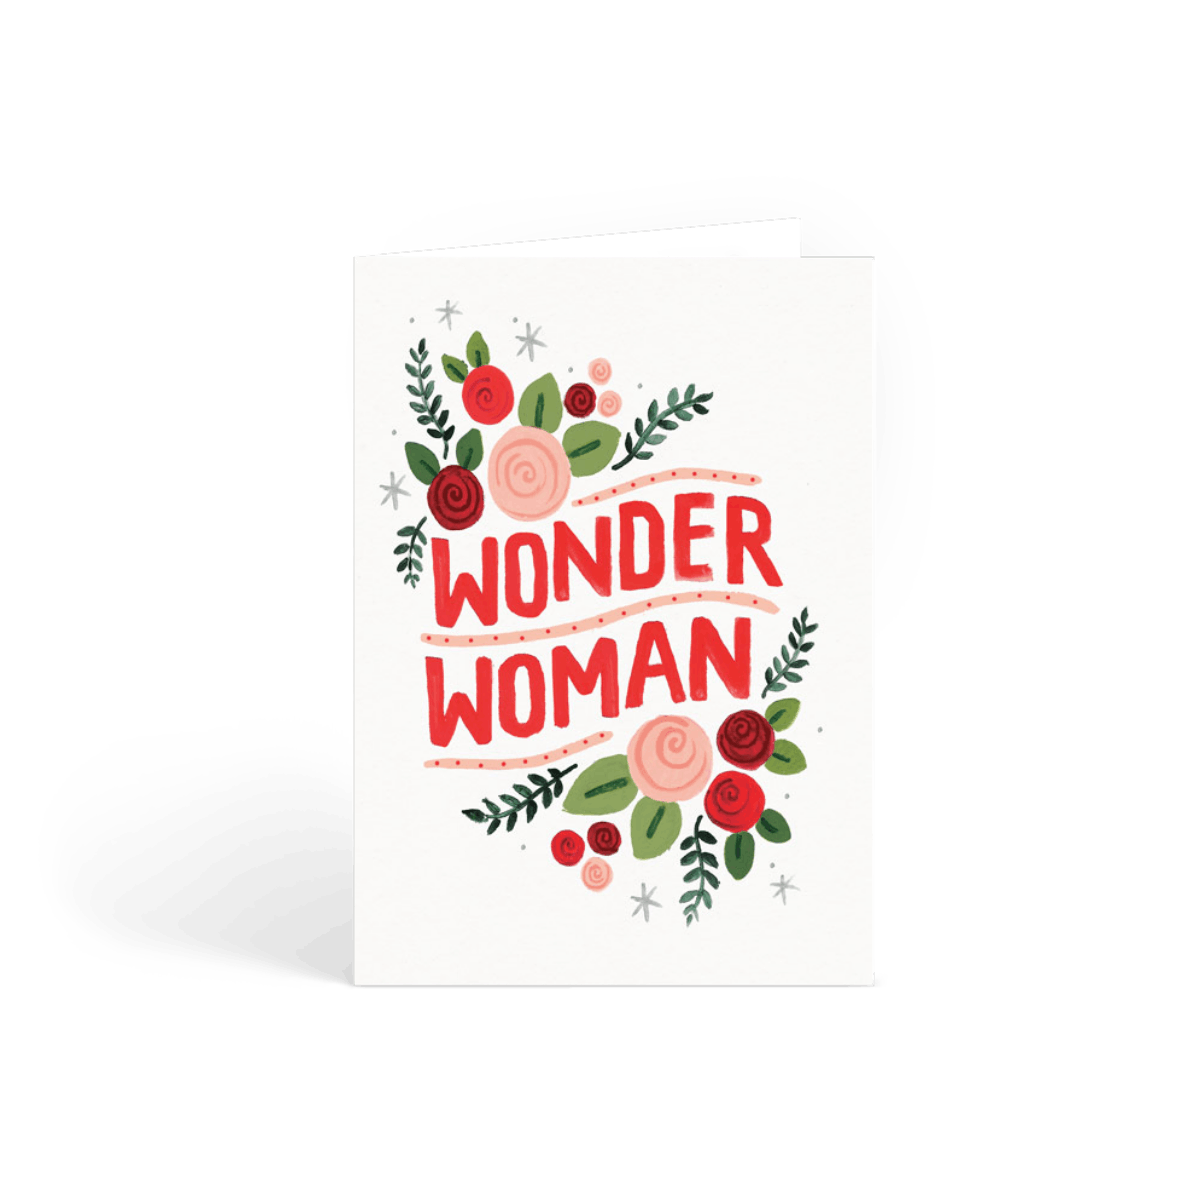 Https%3a%2f%2fwww.papier.com%2fproduct image%2f61967%2f2%2fwonder woman 14699 front 1547813536.png?ixlib=rb 1.1